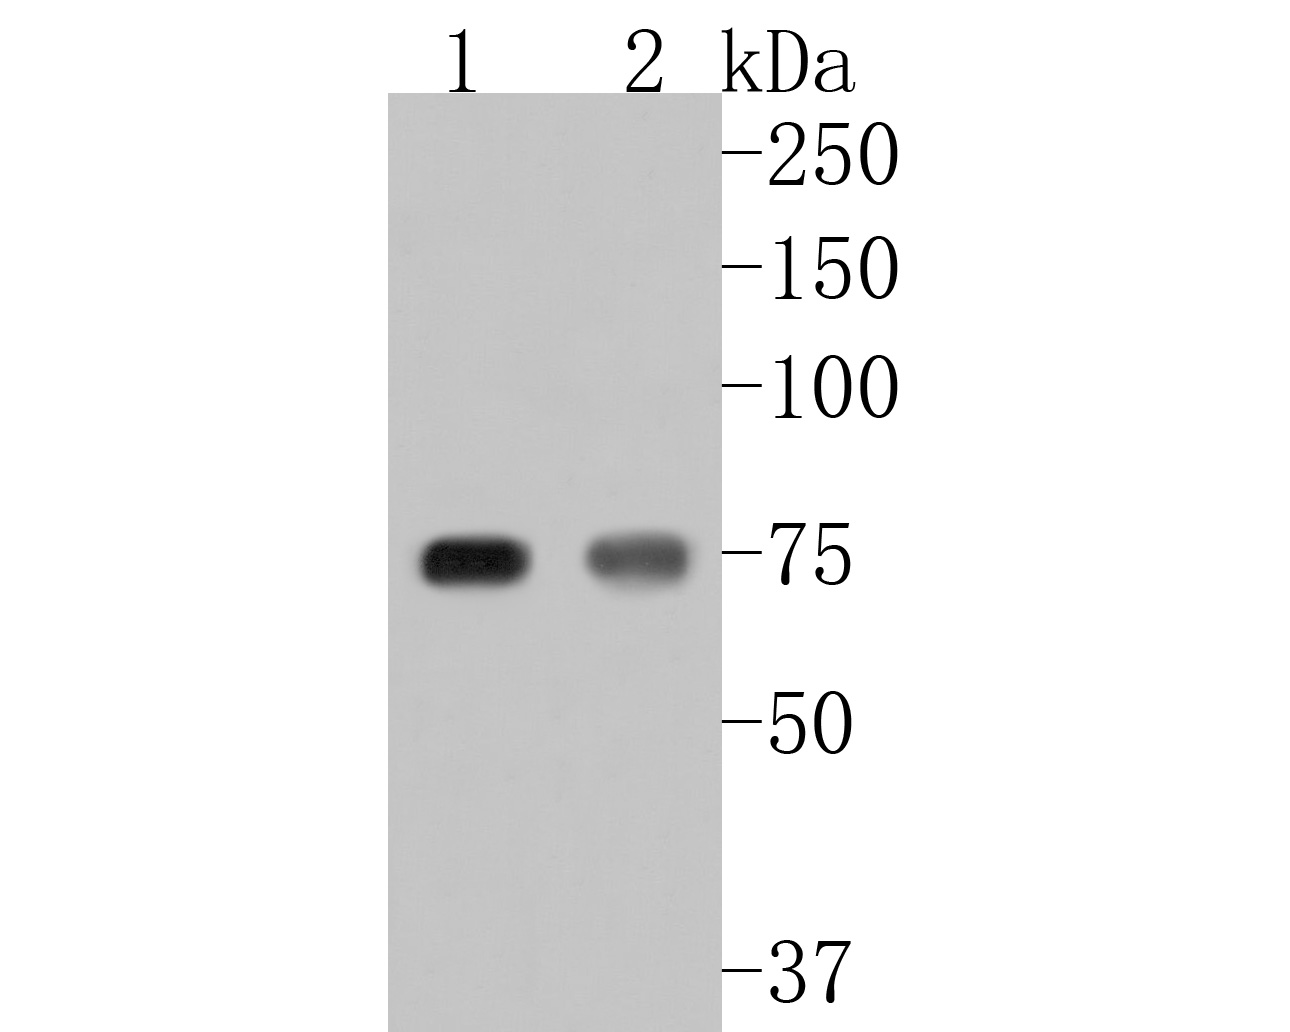 Western blot analysis of FACL4 on different lysates. Proteins were transferred to a PVDF membrane and blocked with 5% BSA in PBS for 1 hour at room temperature. The primary antibody (ET7111-43, 1/500) was used in 5% BSA at room temperature for 2 hours. Goat Anti-Rabbit IgG - HRP Secondary Antibody (HA1001) at 1:5,000 dilution was used for 1 hour at room temperature.<br /> Positive control: <br /> Lane 1: NIH/3T3 cell lysate<br /> Lane 2: HepG2 cell lysate